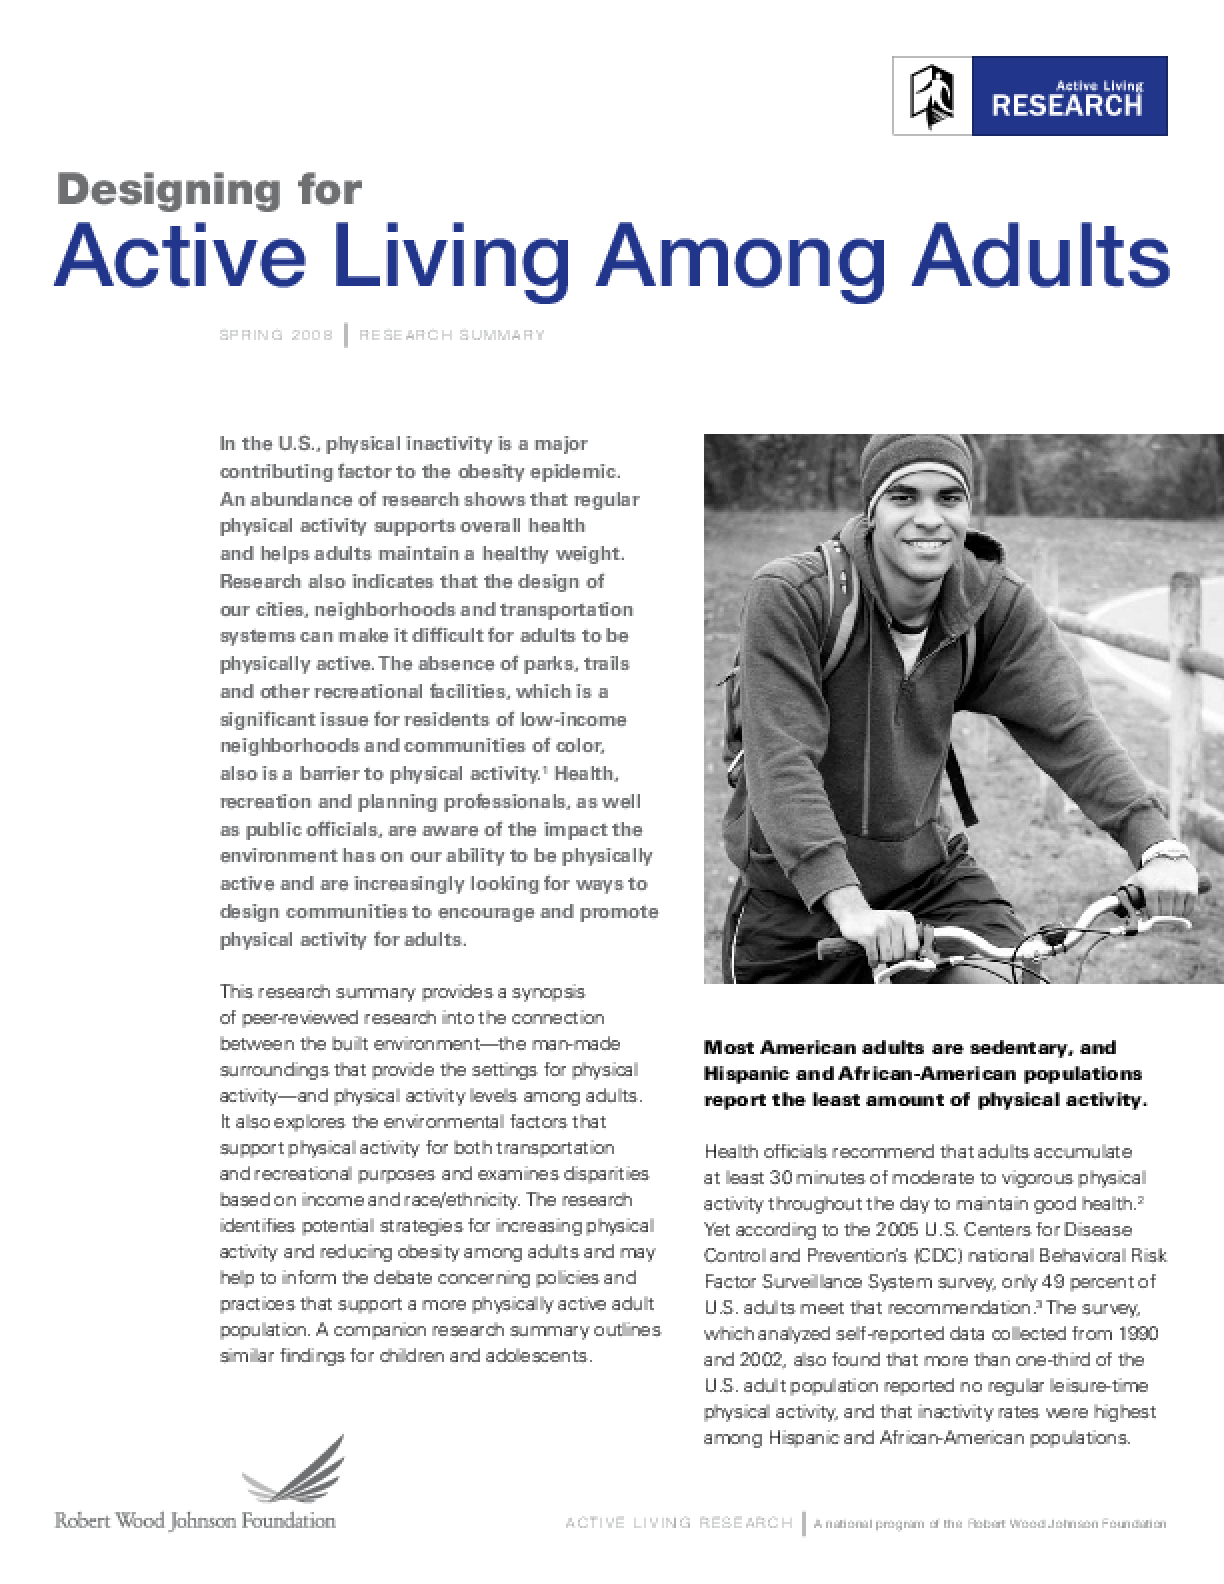 Designing for Active Living Among Adults